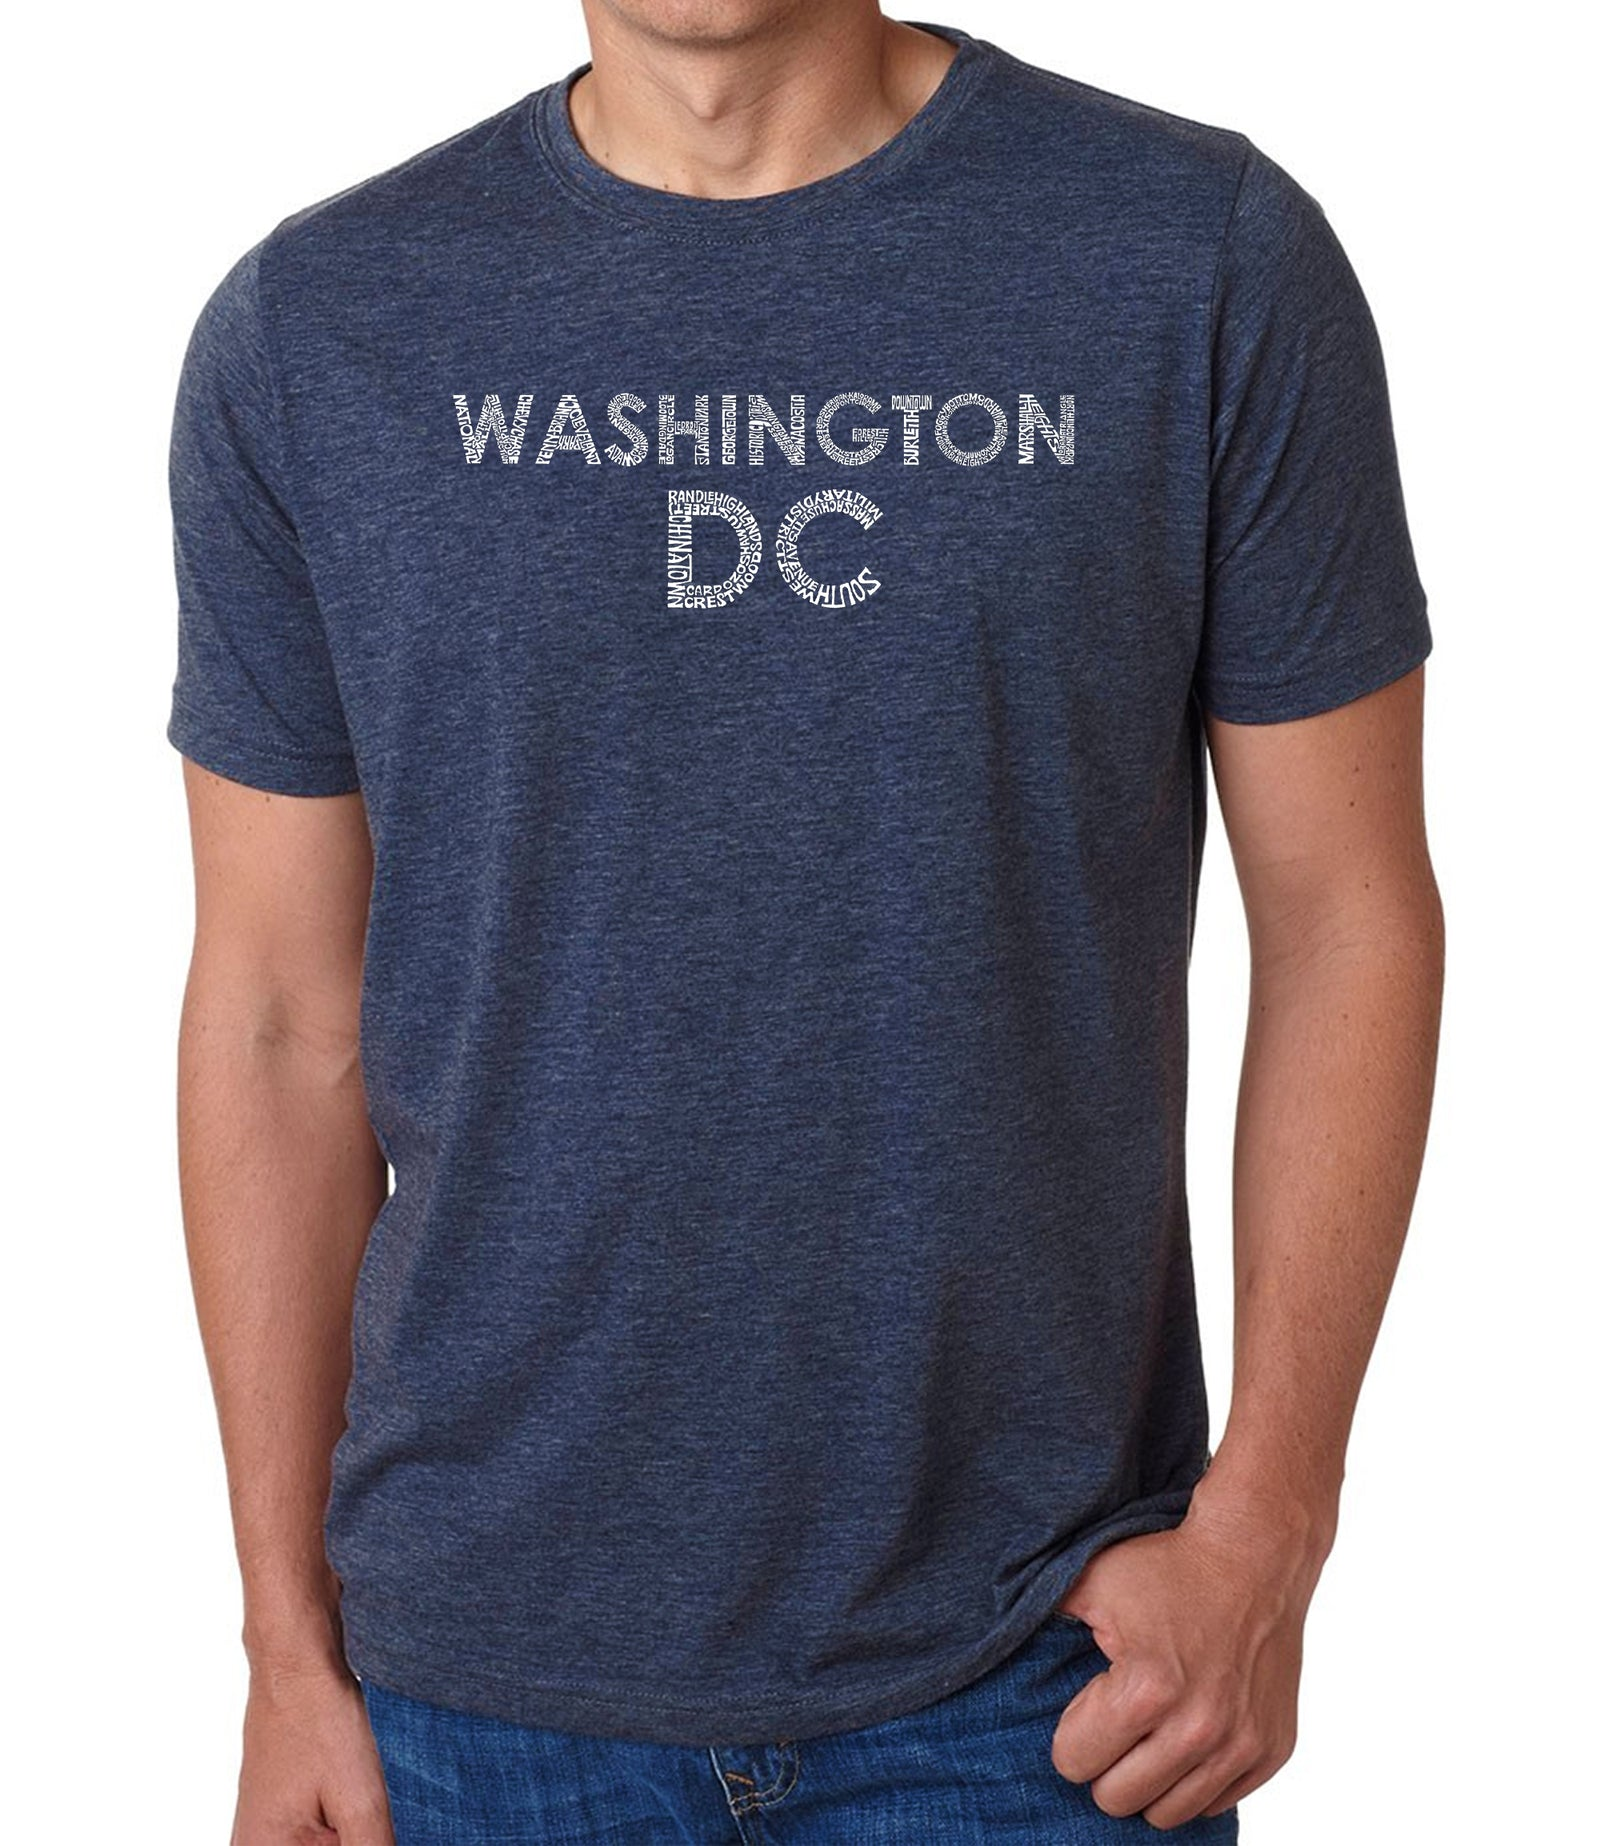 Men's Premium Blend Word Art T-shirt - WASHINGTON DC NEIGHBORHOODS